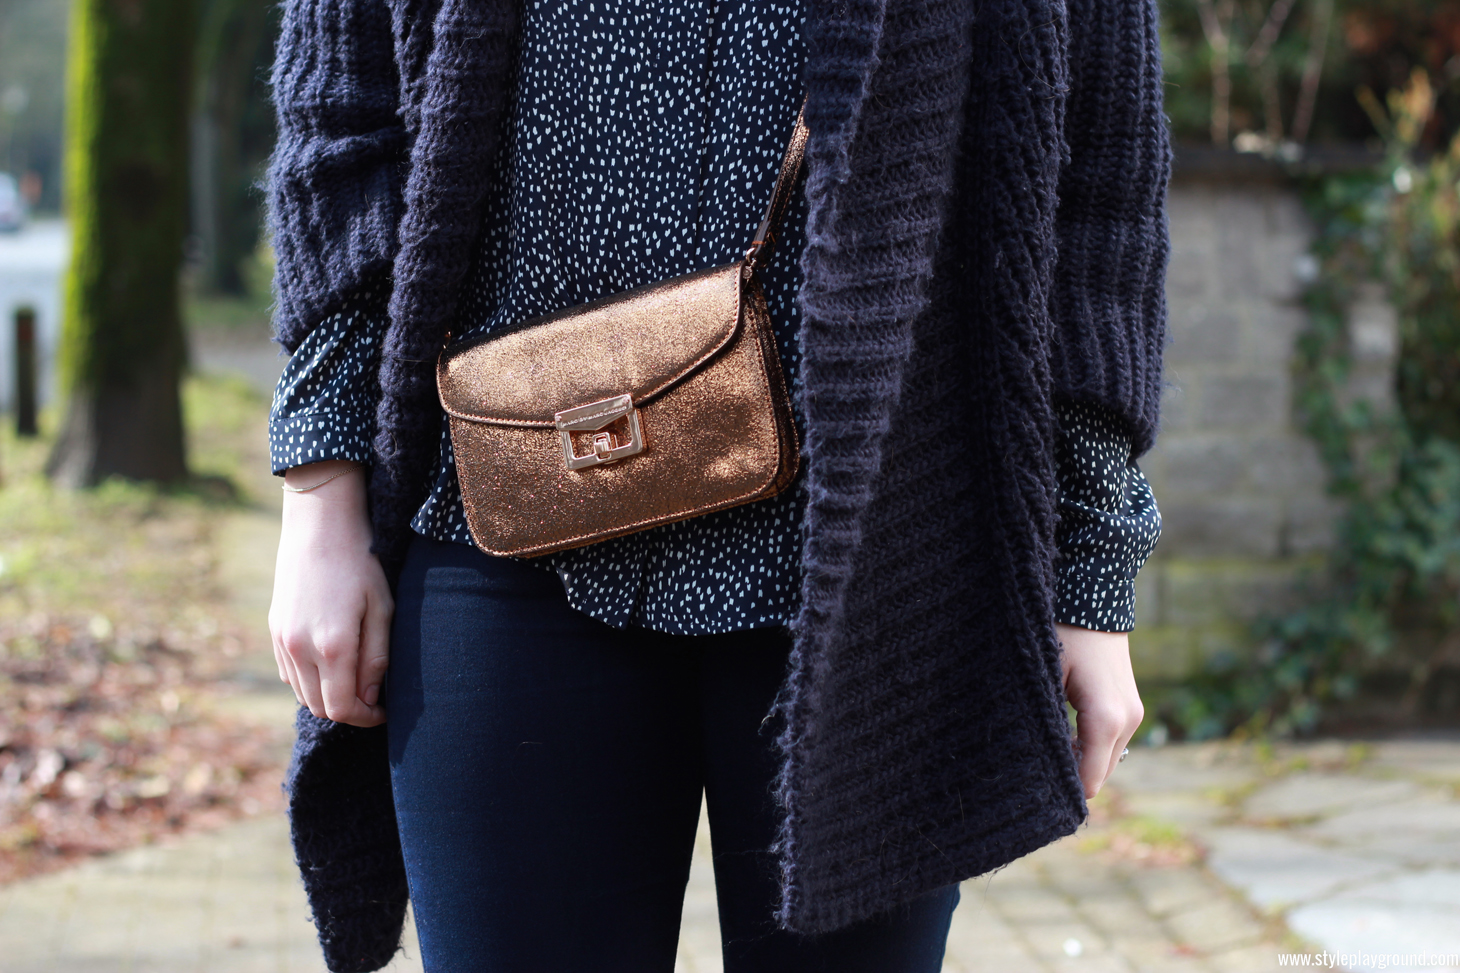 Axelle Blanpain of Style playground is wearing a Mango top, Zara knit, American Eagle jeggings, Acne boots & Marc by Marc Jacobs bag